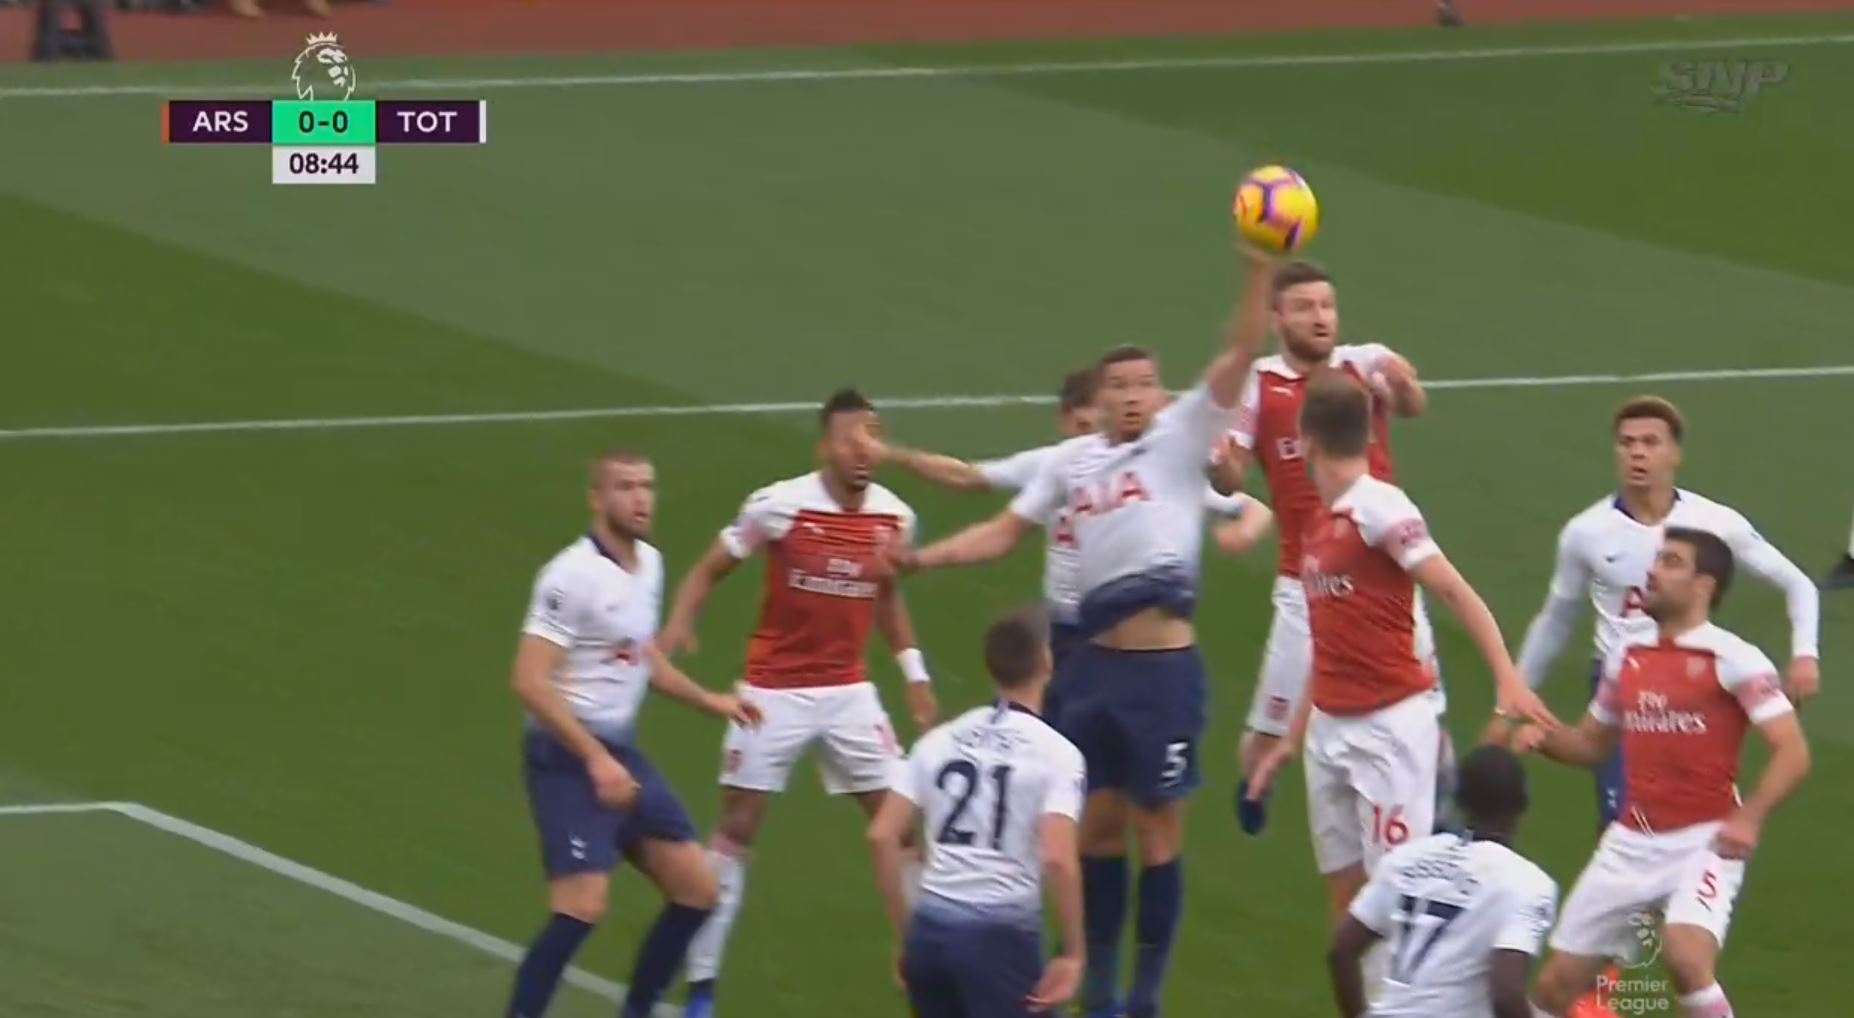 WATCH: Vertonghen Gives Away Penalty For Hilariously Silly Hand Ball